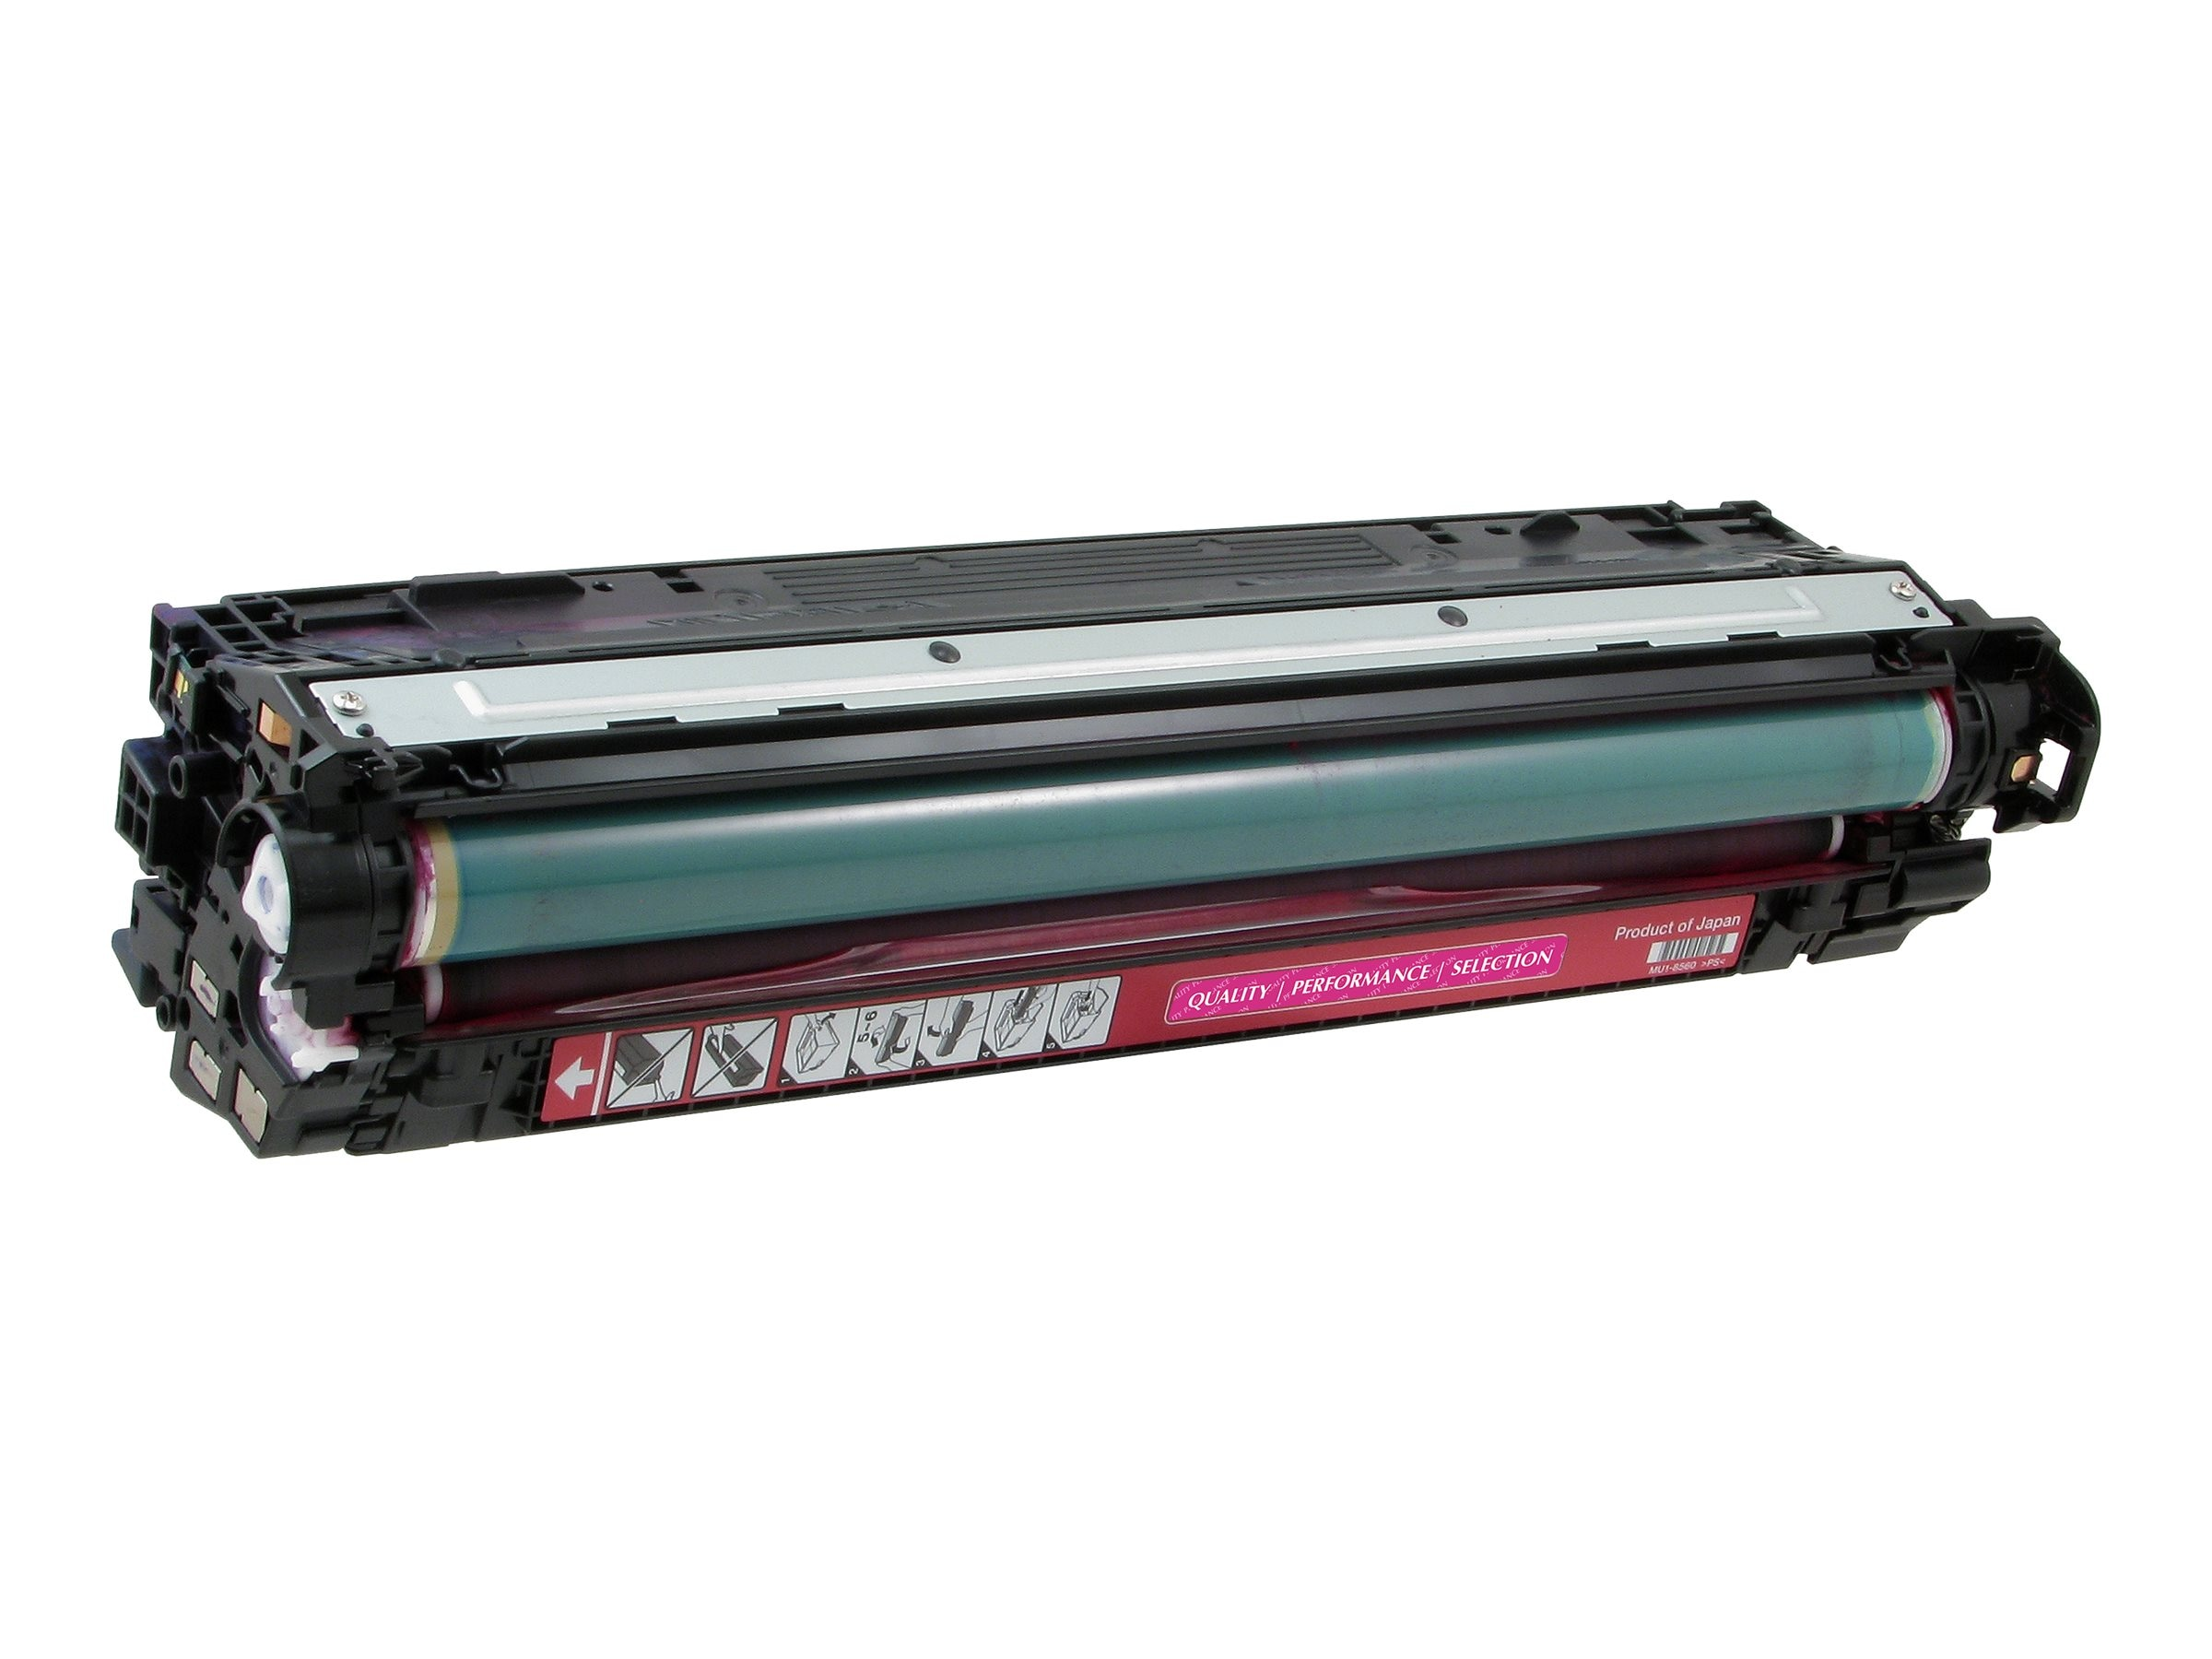 V7 CE743A Magenta Toner Cartridge for HP Color LaserJet P5220, V75220M